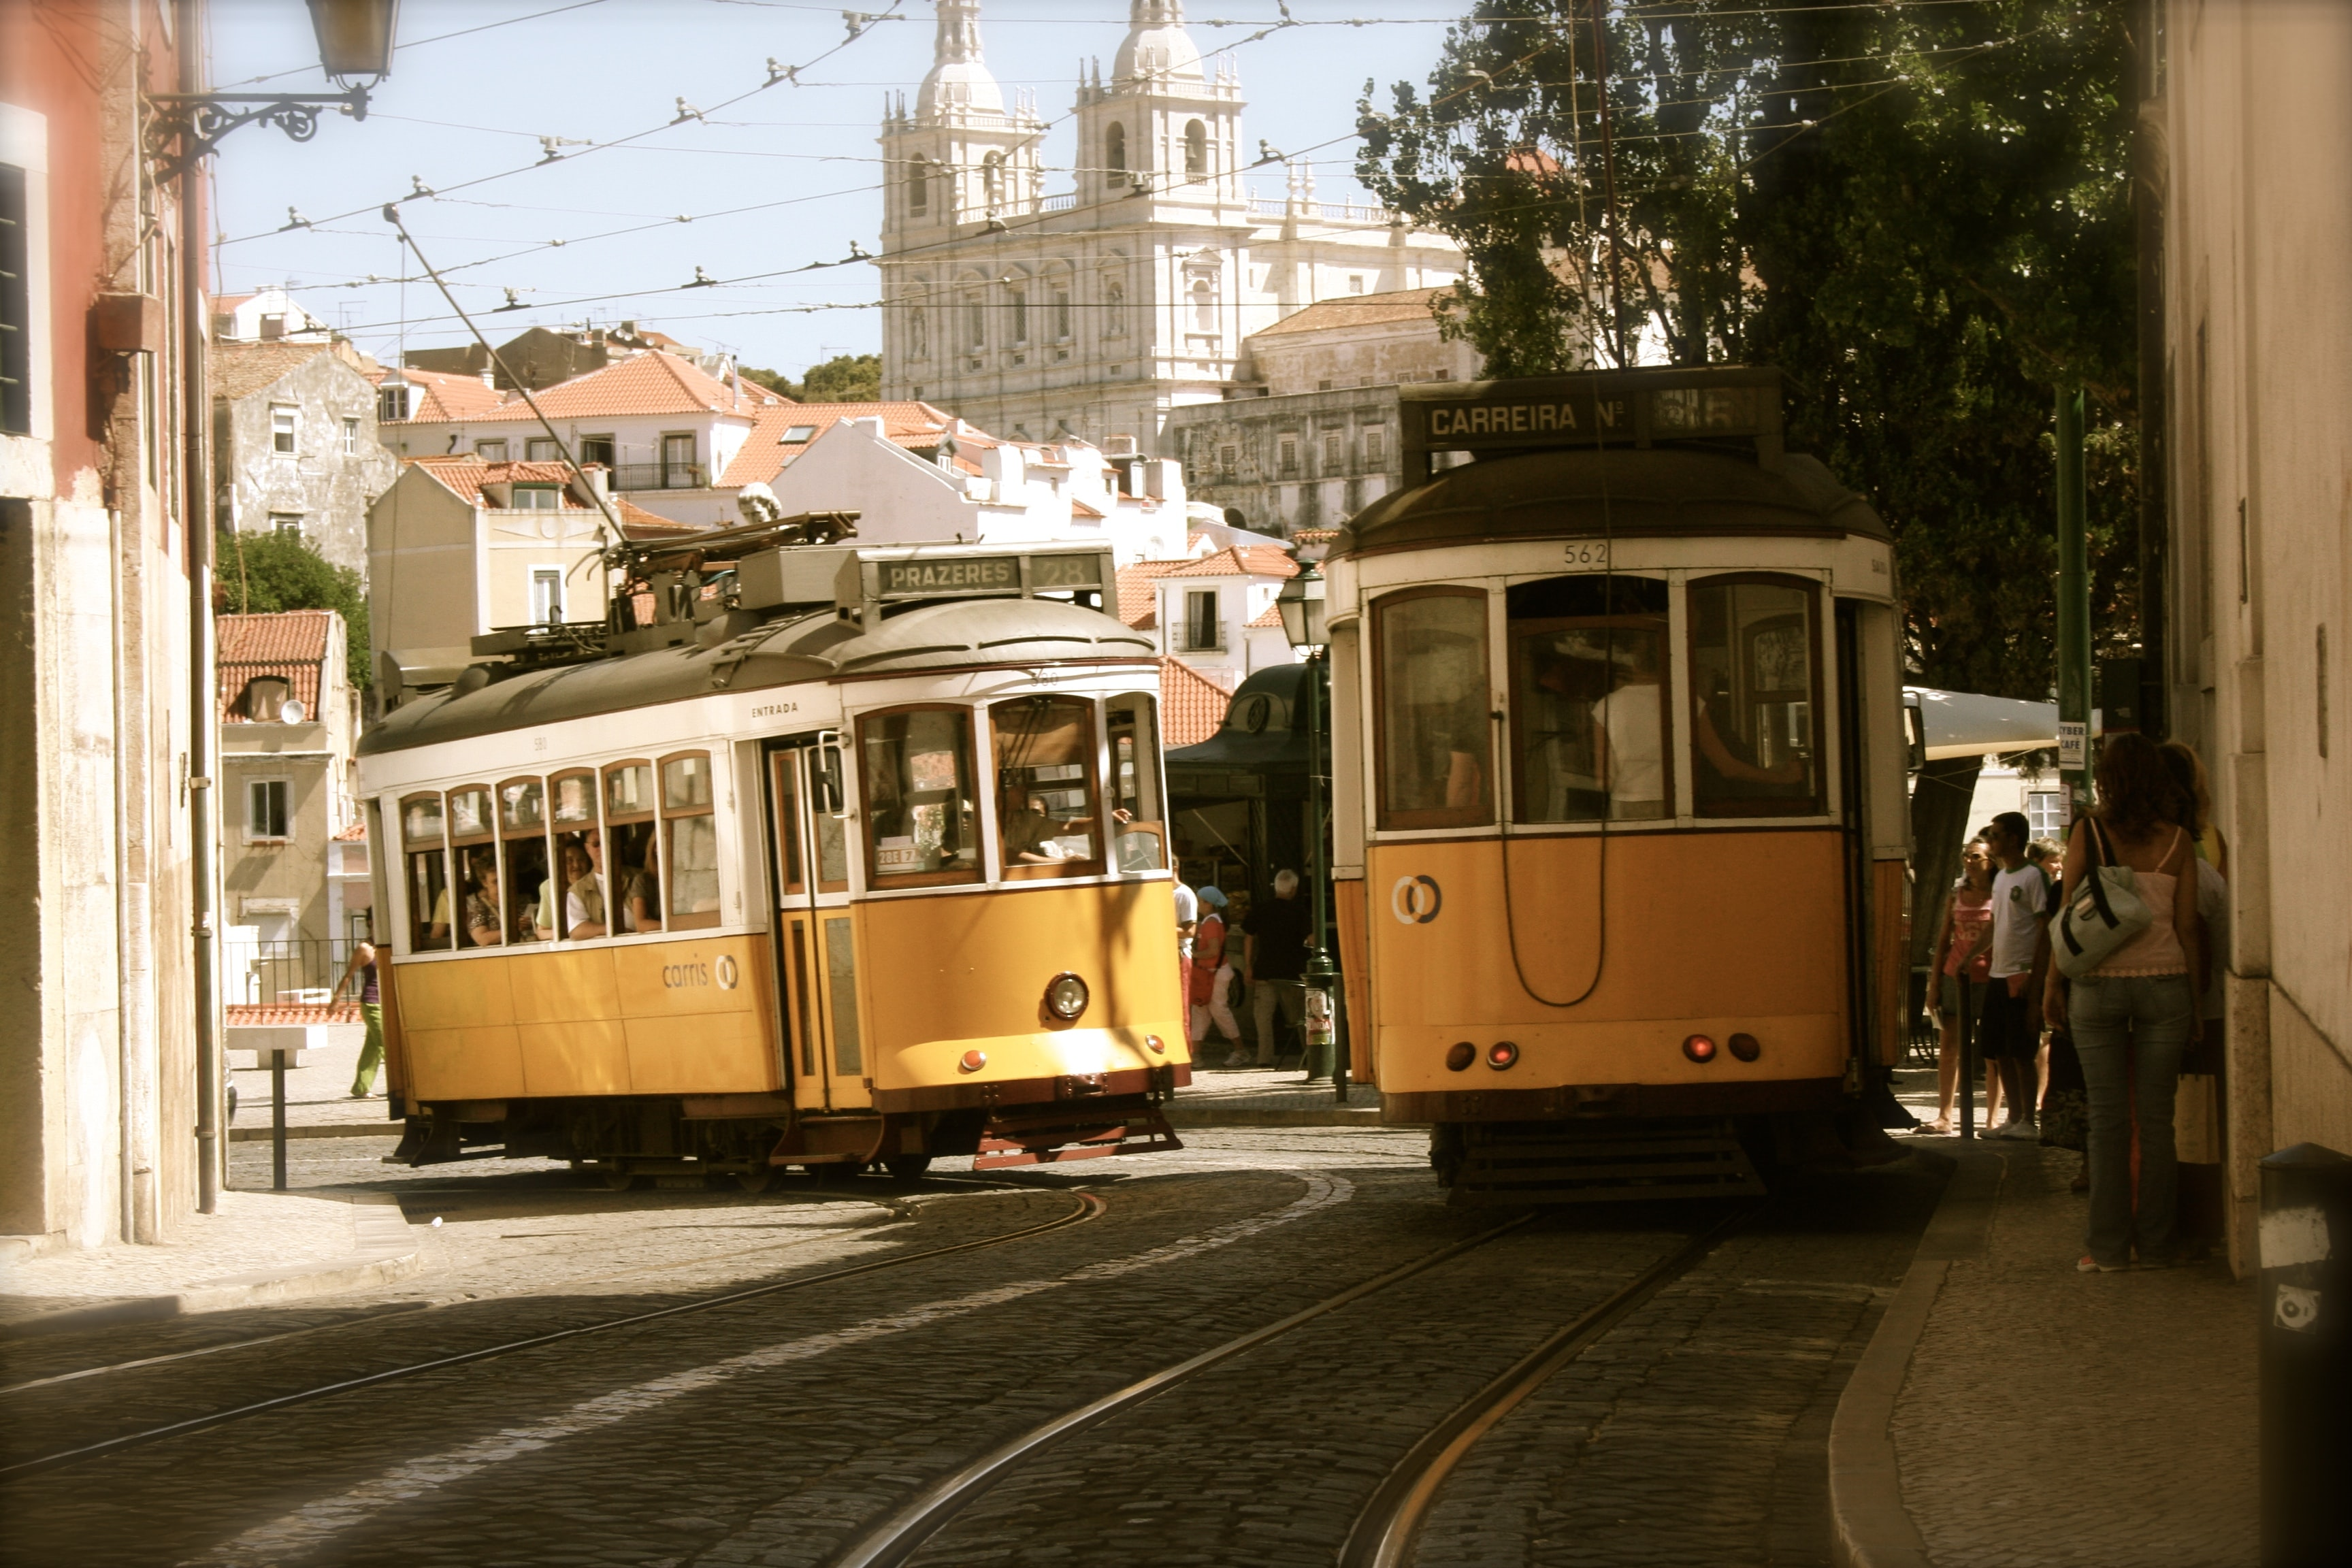 Trolley cars on rails on a side street in a sunlit Portuguese city